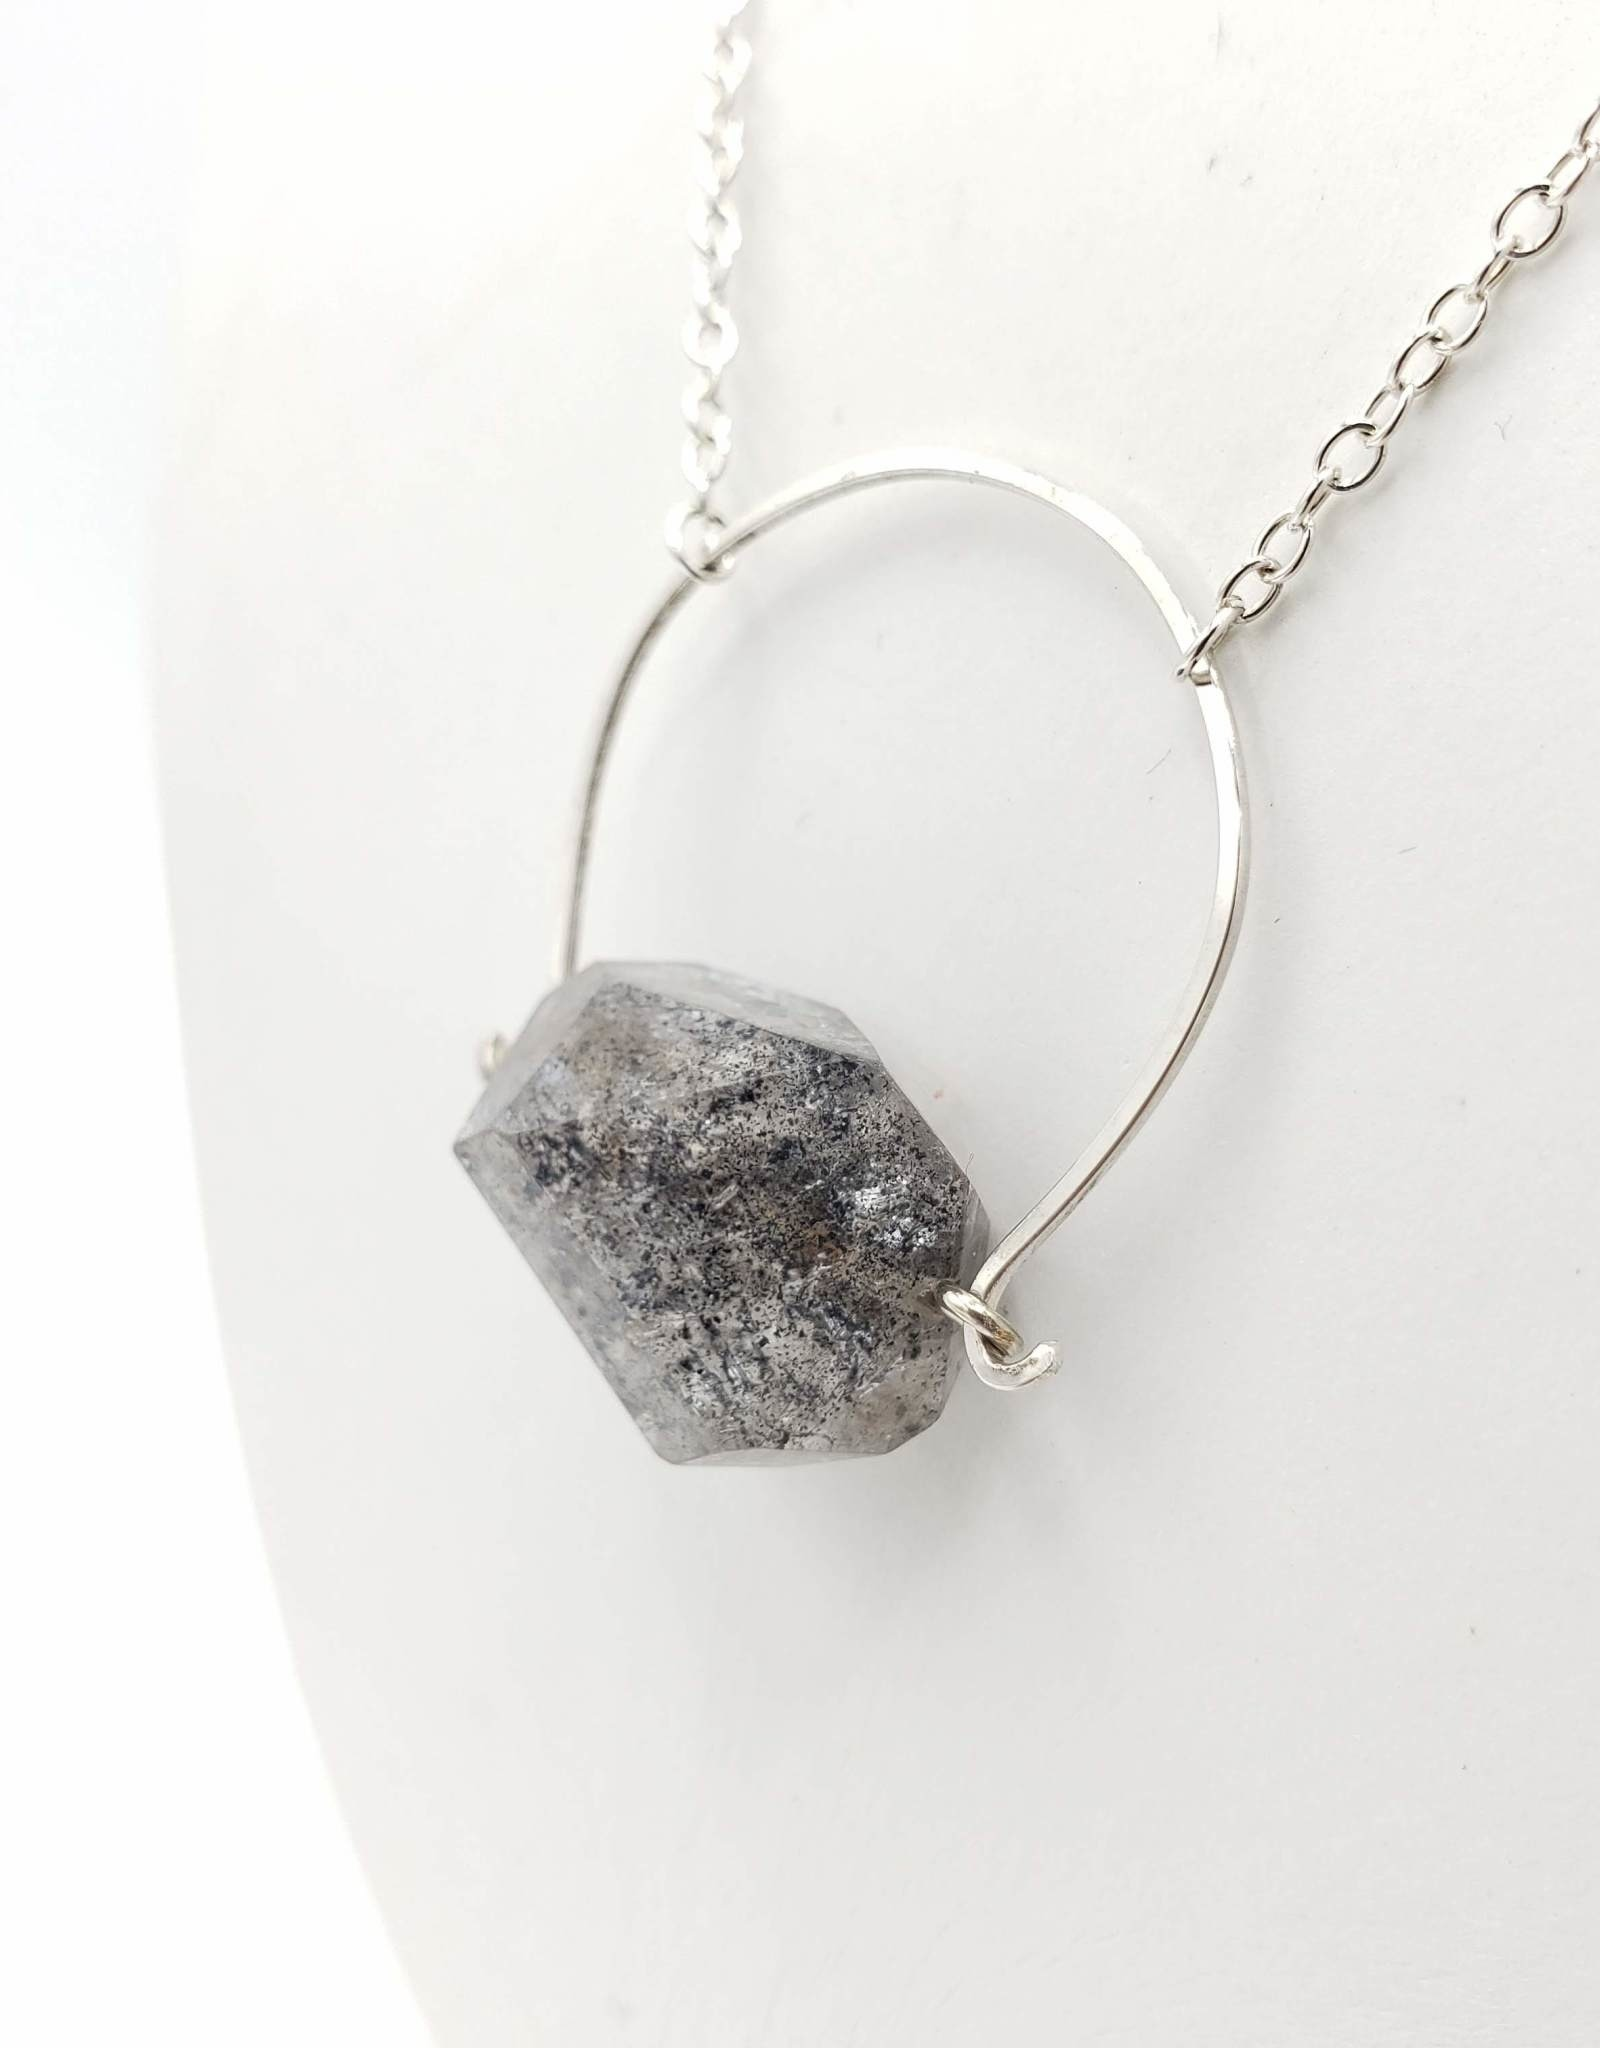 Redux Sterling Wire Horseshoe Necklace with Dark Quartz Crystal